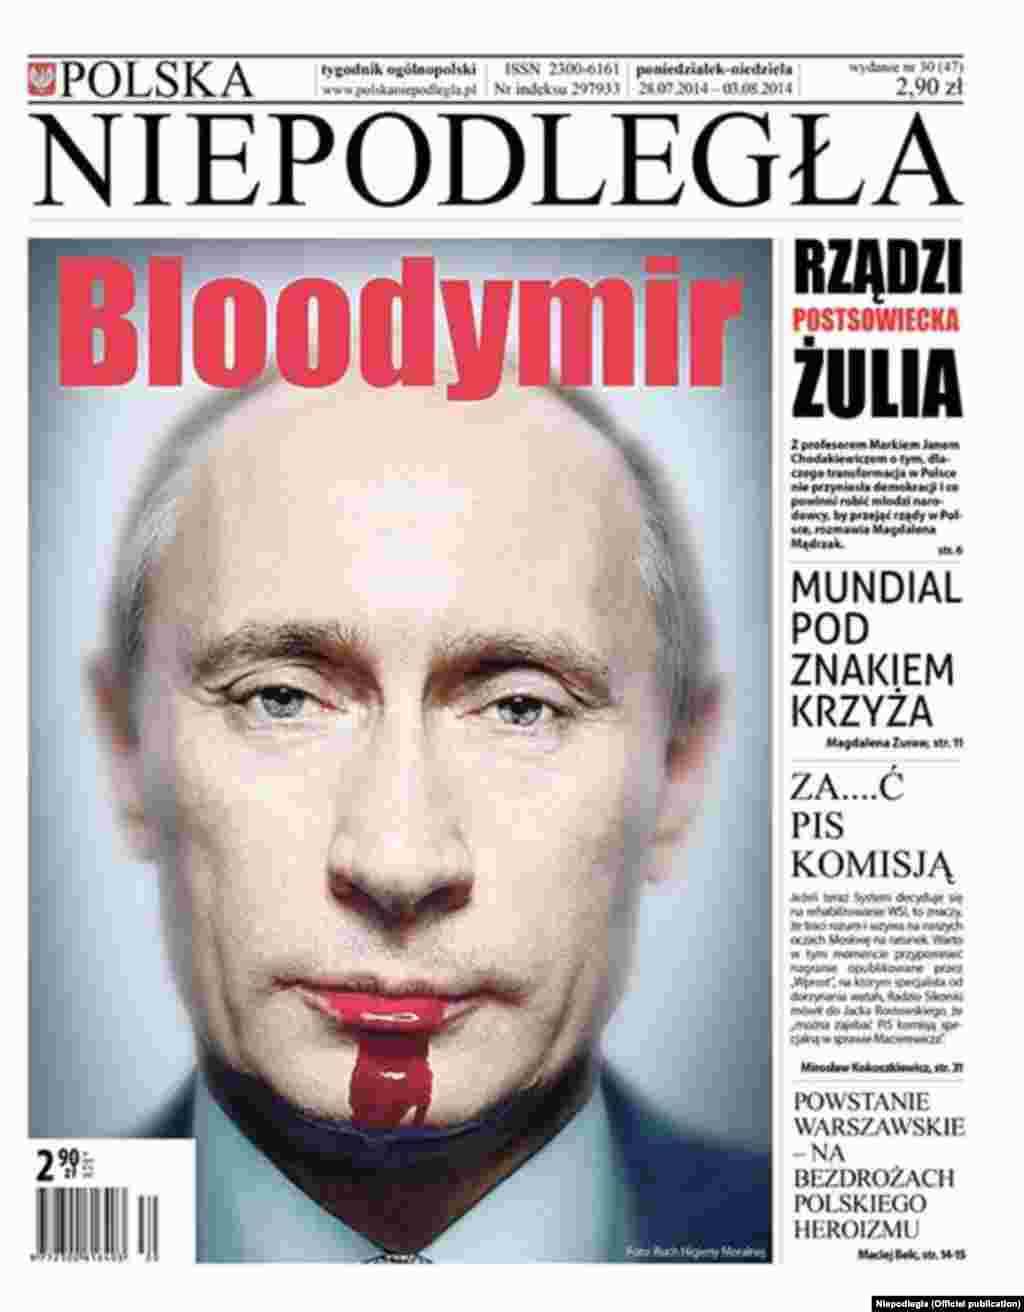 """The July 28 issue ofPoland's """"Niepodlegla"""" calls the Russian leader """"Bloodymir."""""""